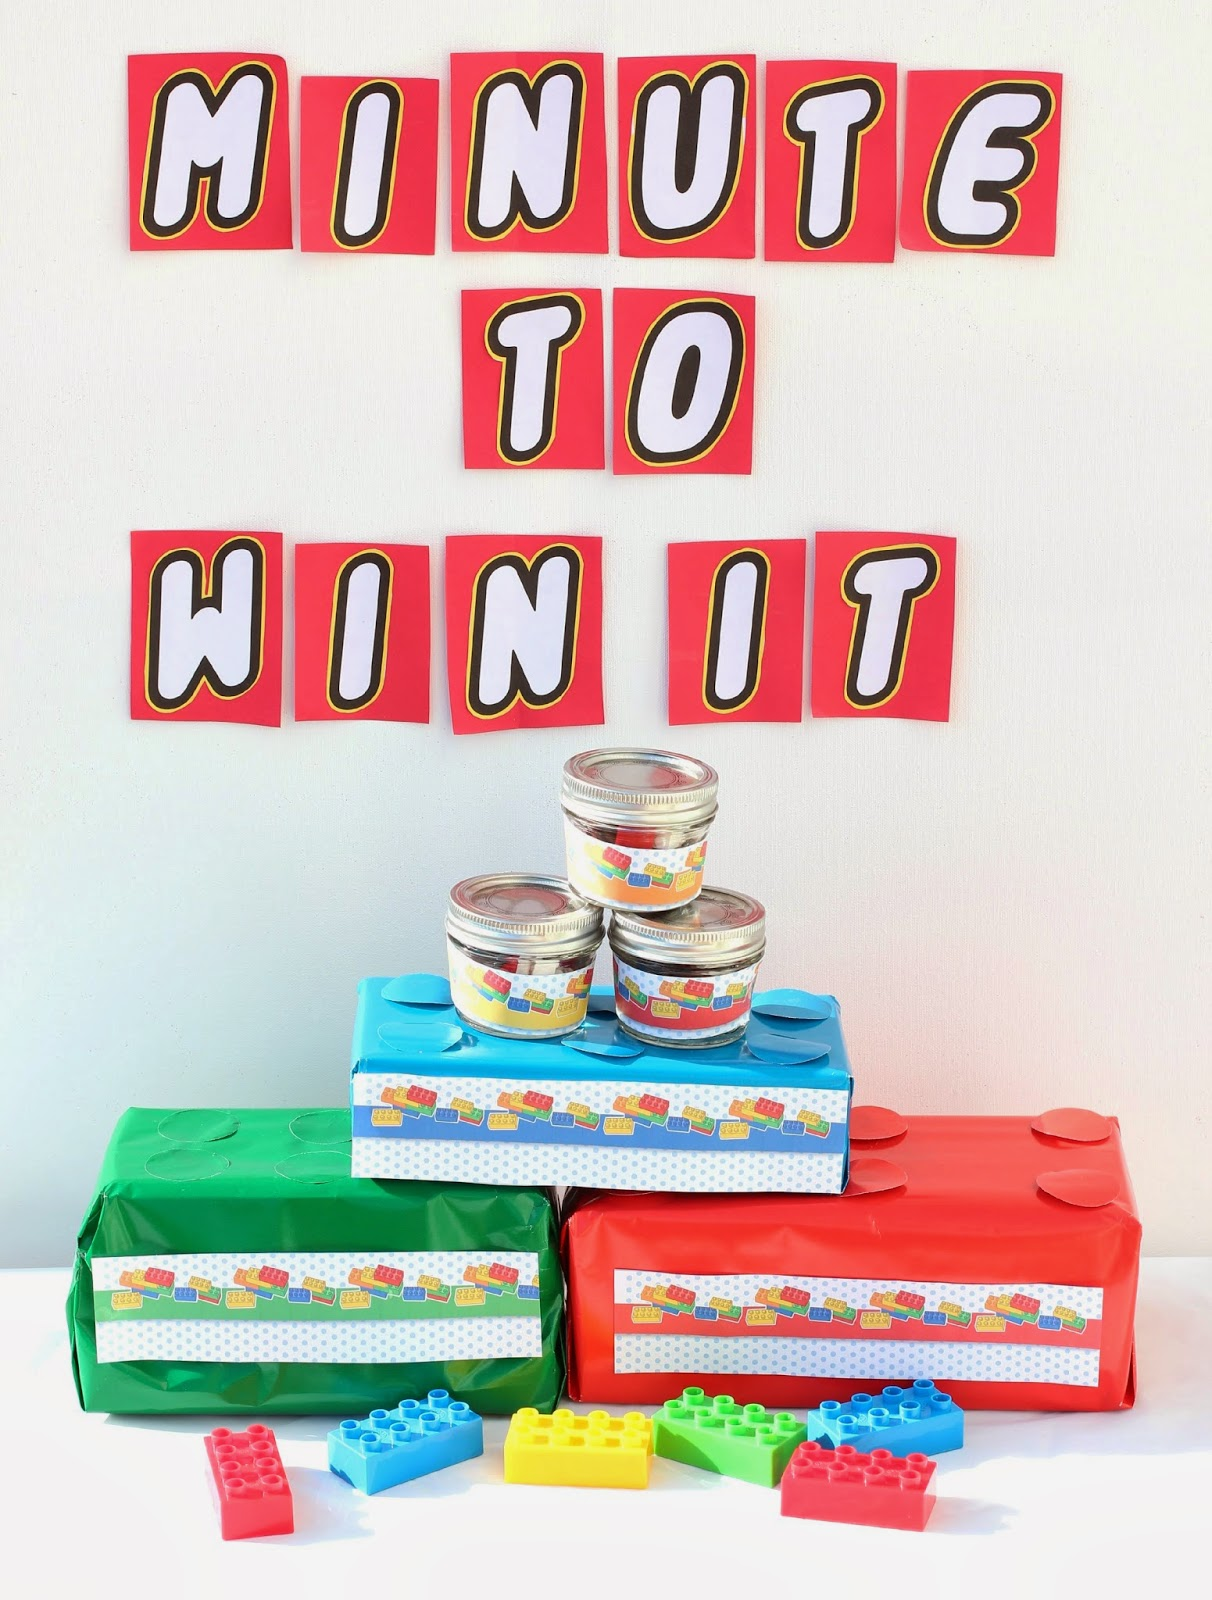 10 Lego Inspired Minute to Win It Party Games + Other DIY Lego Party Ideas from playpartypin.com #party #Legos #kids